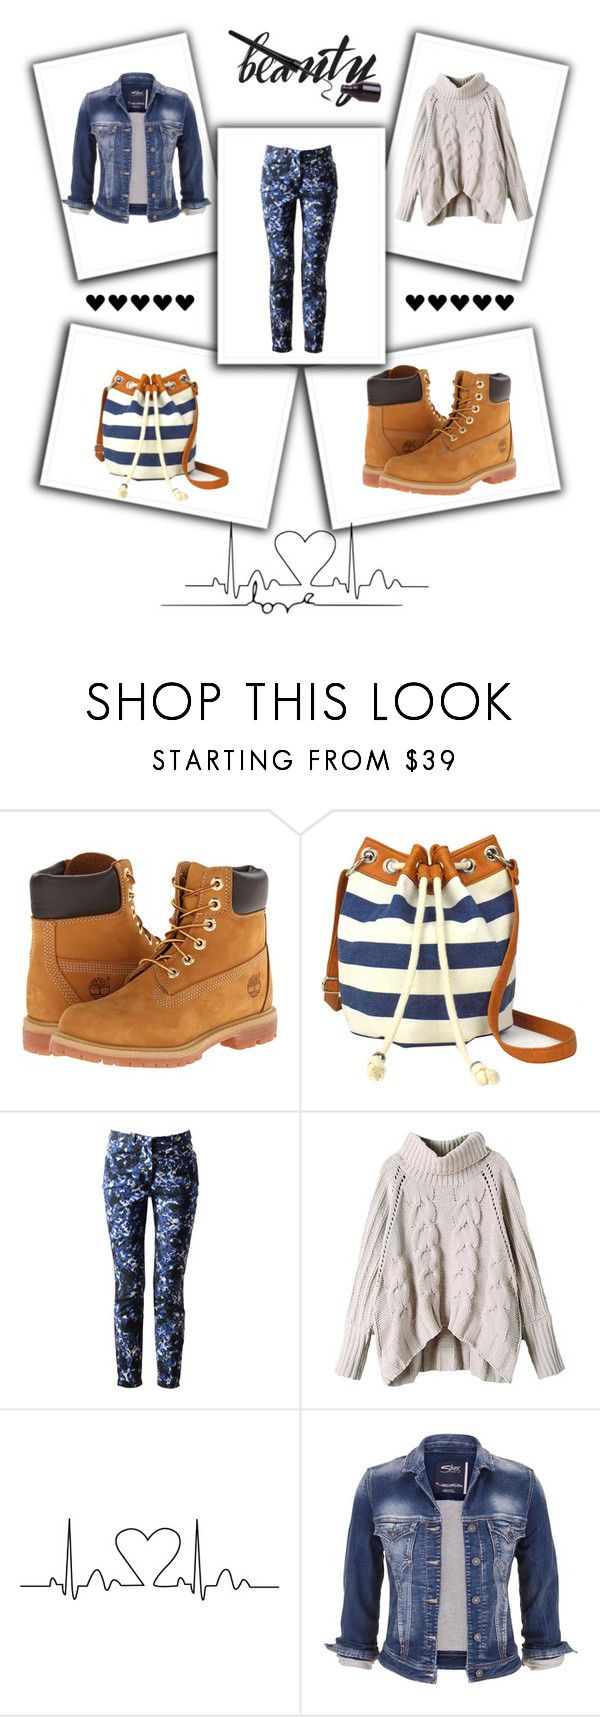 """""""Simple beauty"""" by nescio ❤ liked on Polyvore featuring Timberland, Arizona, Erdem, maurices, simplicity and nescio"""